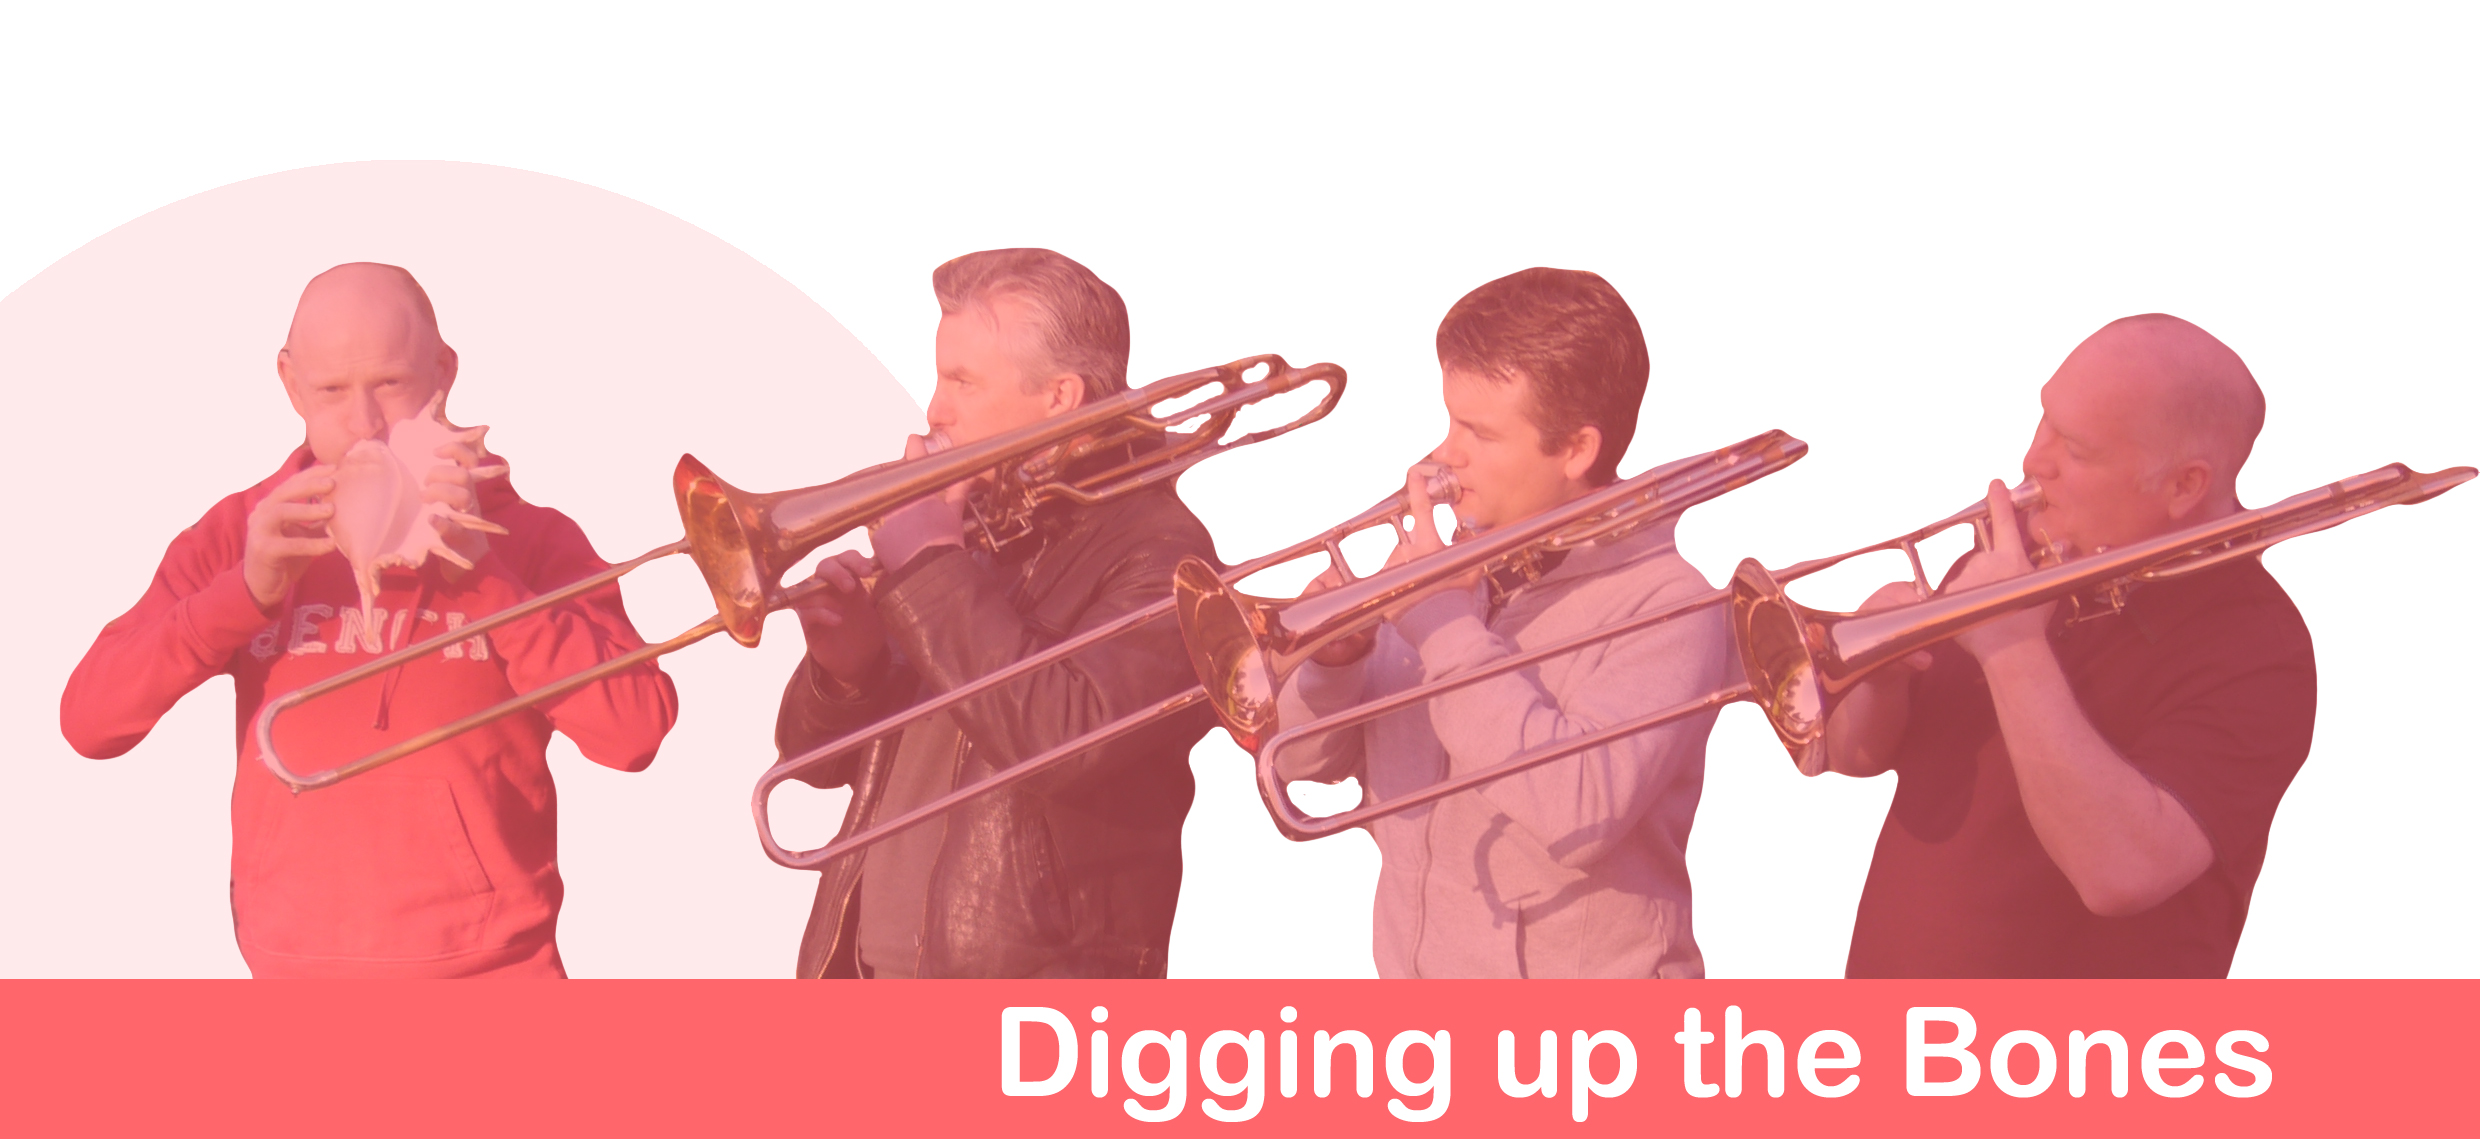 3443Bournemouth Bones Present: Digging up the Bones (A musical history tour!)